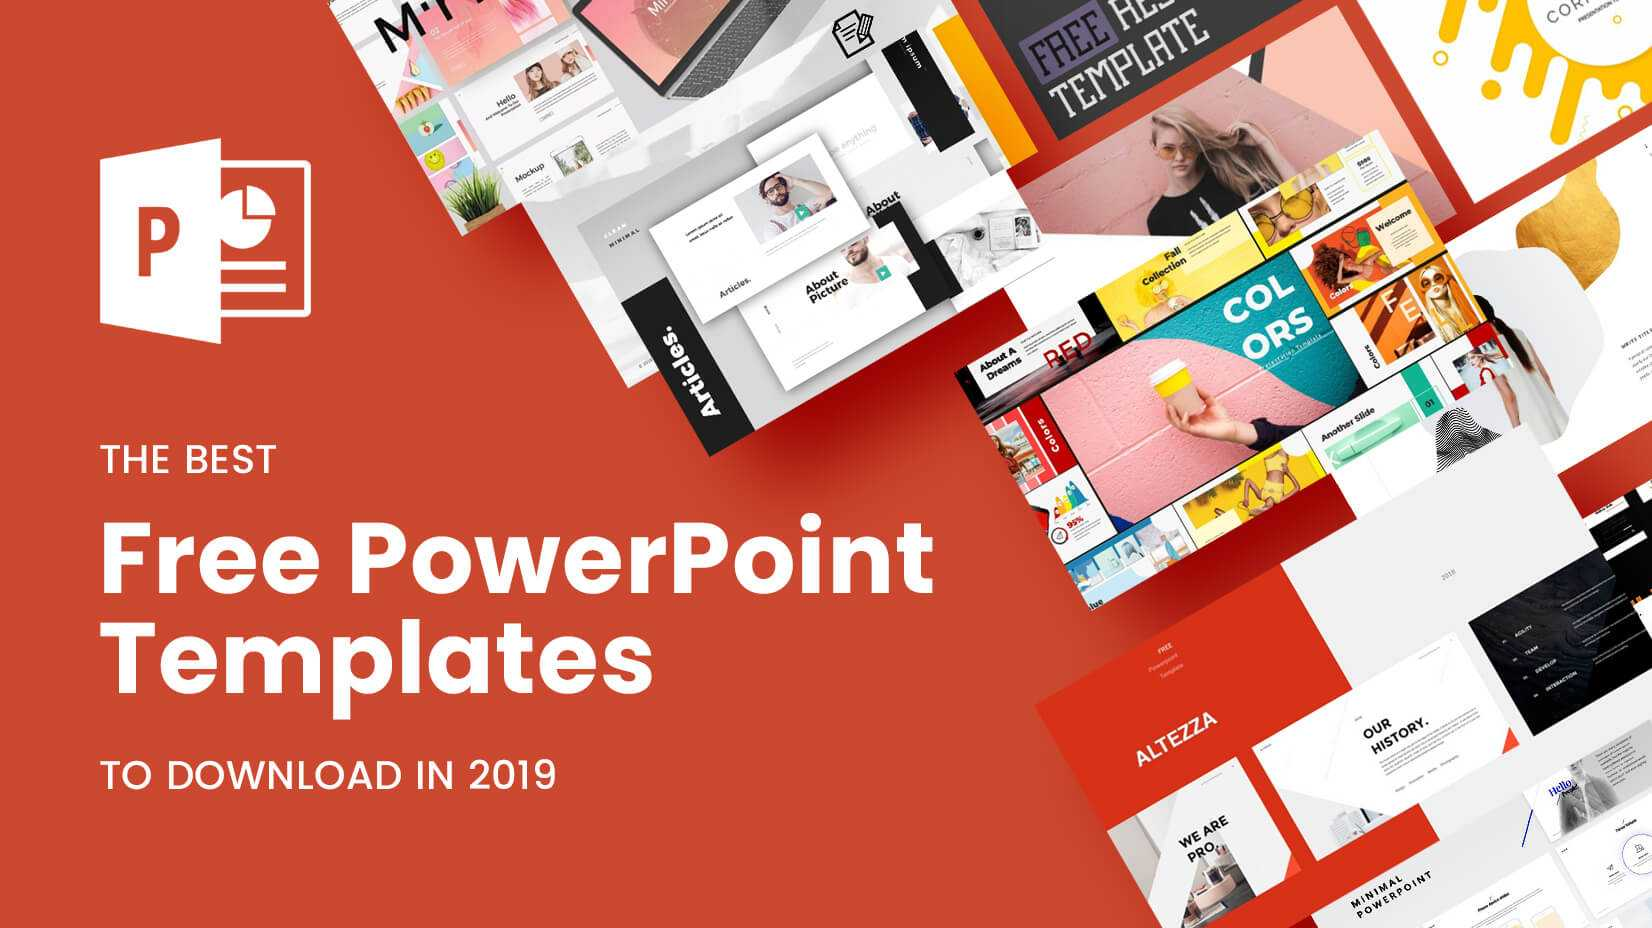 The Best Free Powerpoint Templates To Download In 2019 Throughout Pretty Powerpoint Templates